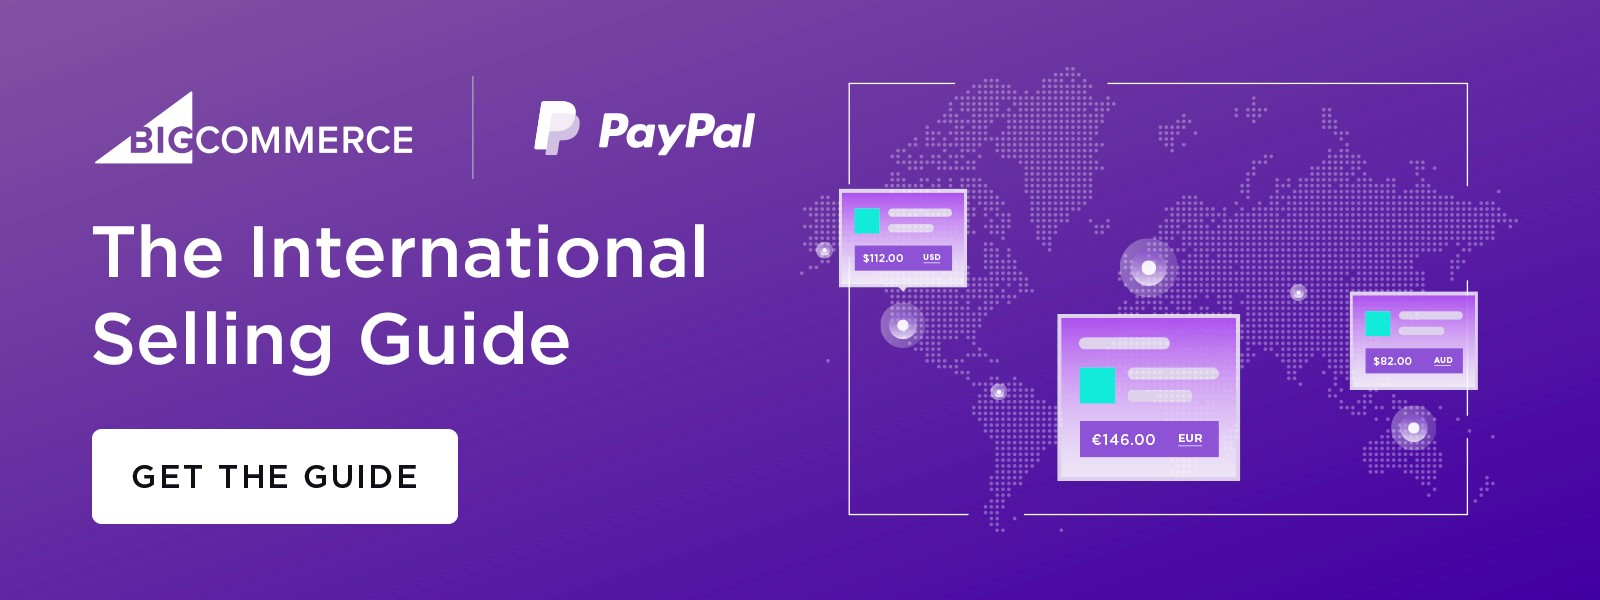 Download The International Selling Guide by PayPal.